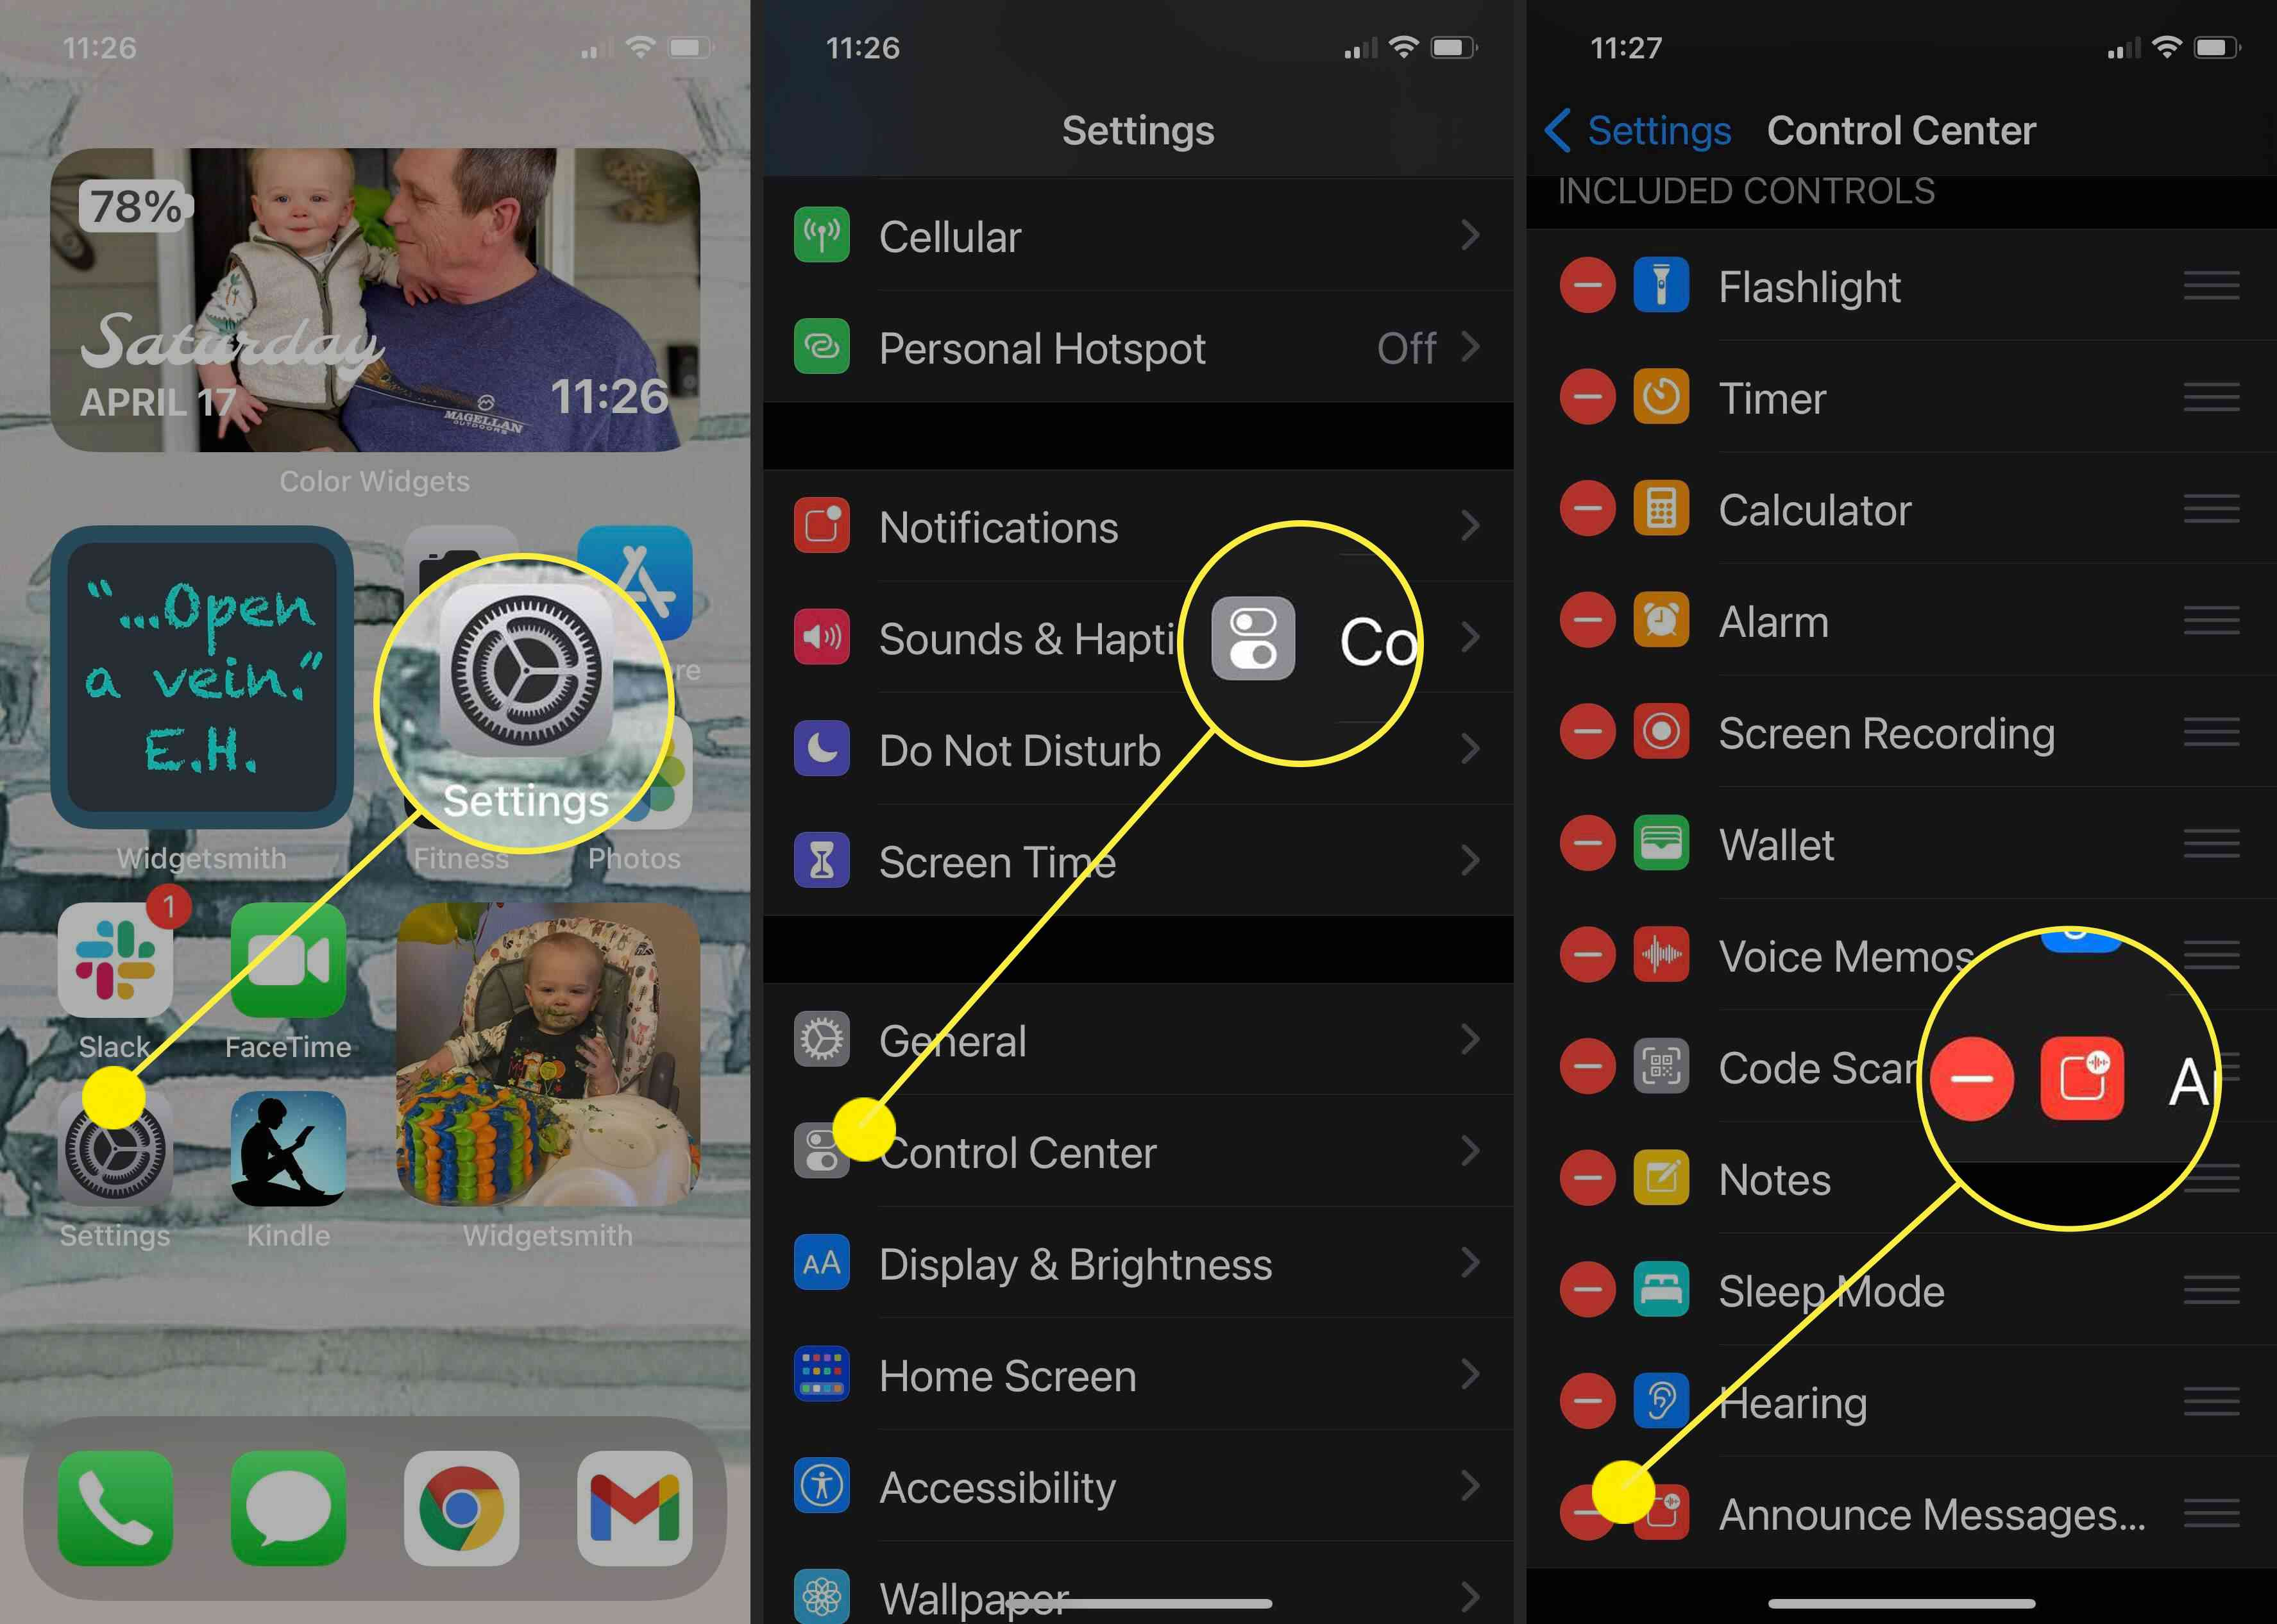 Screenshots showing how to disable Announce Messages with Siri on the iPhone.